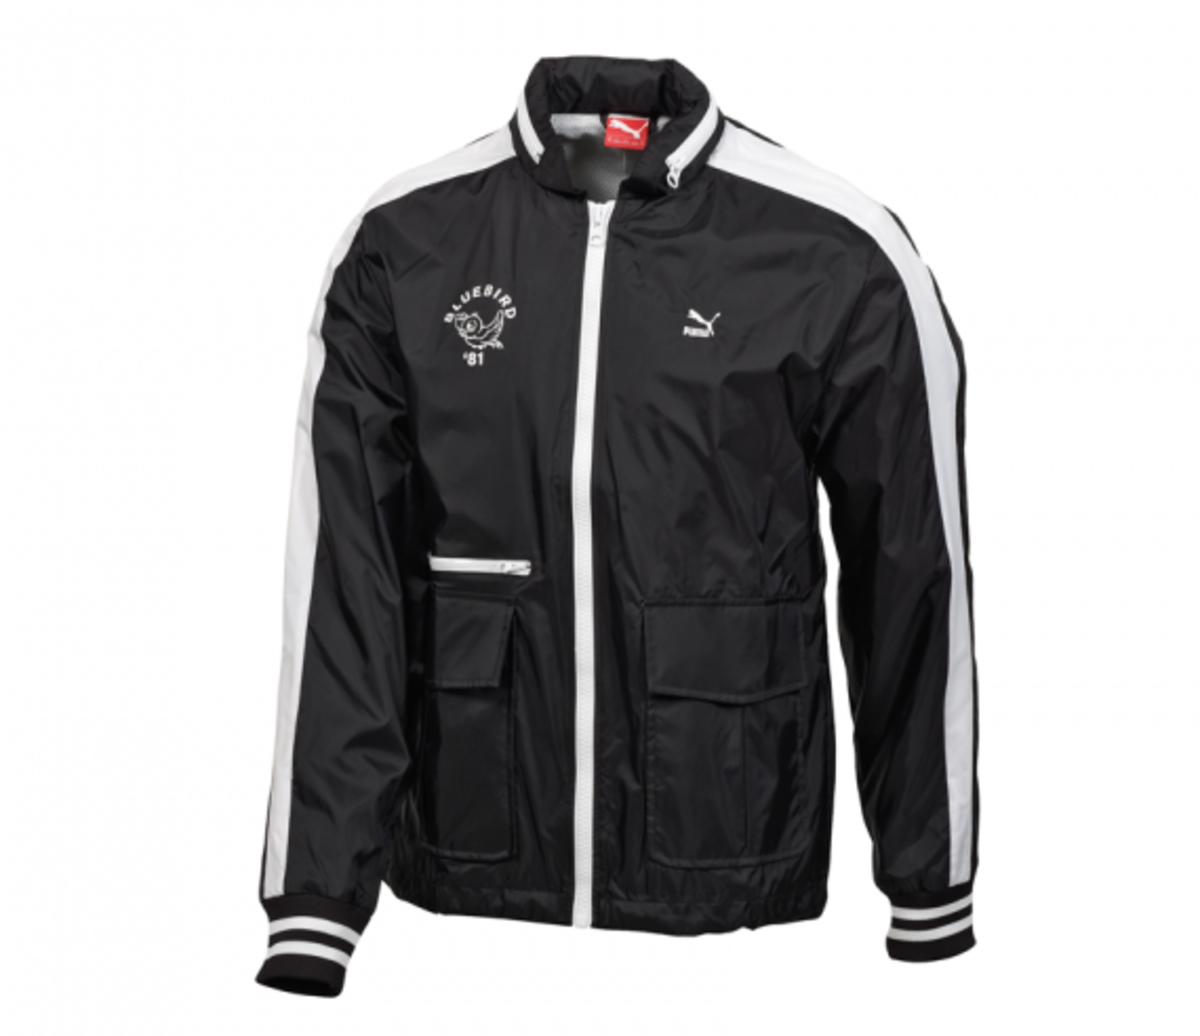 55879701 Edition Wind Jacket